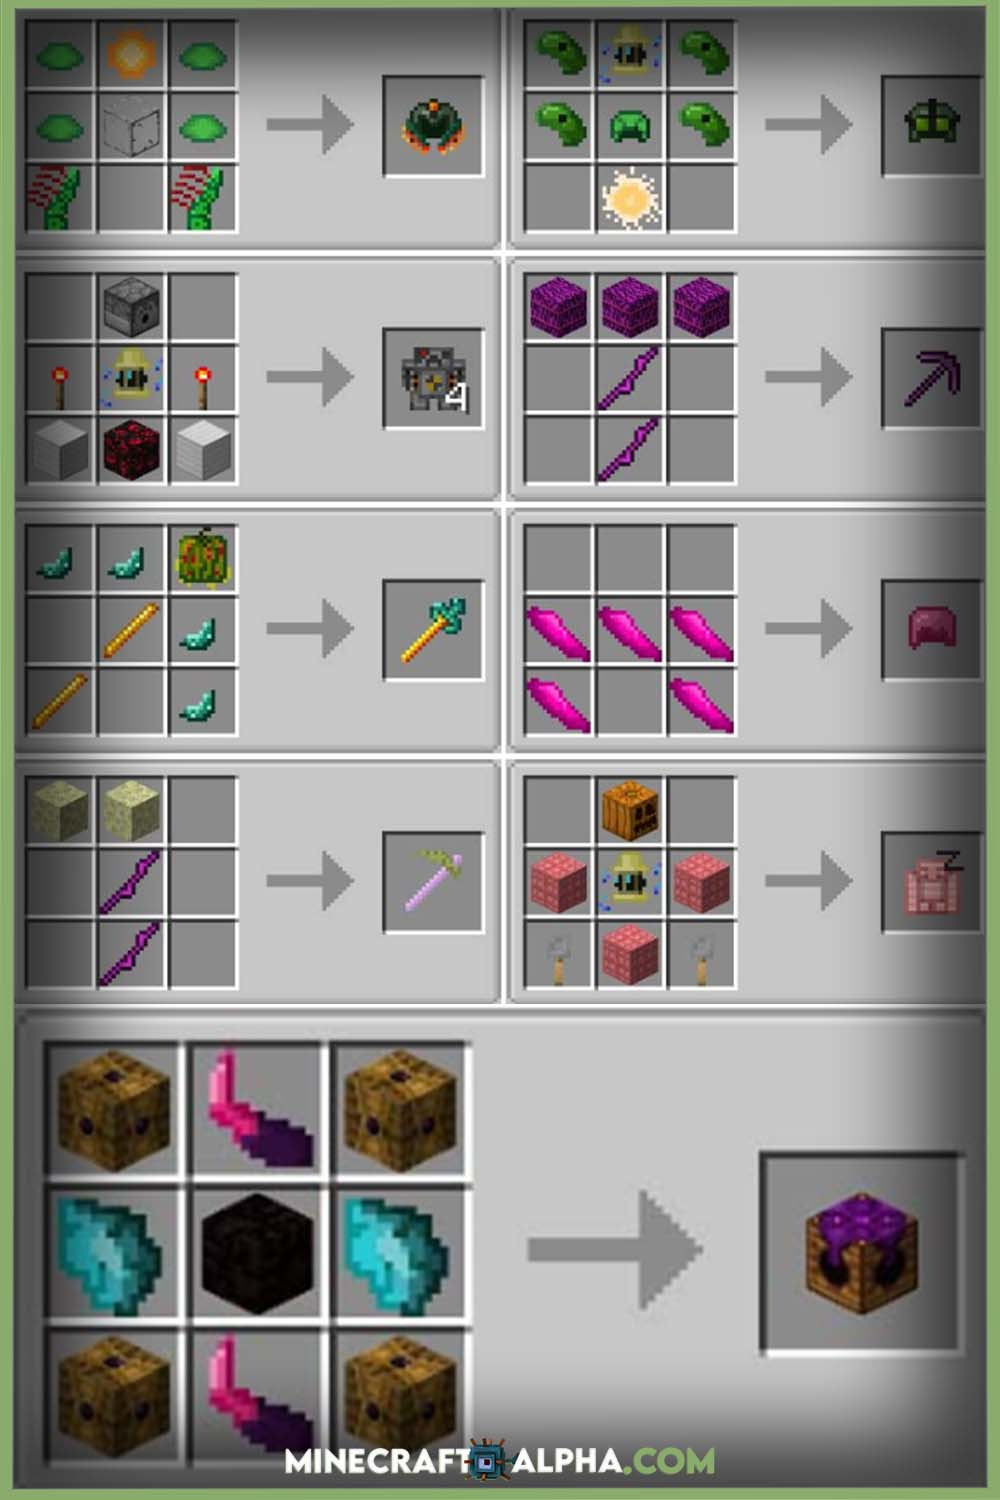 Exotic Critters Mod Crafting Guides